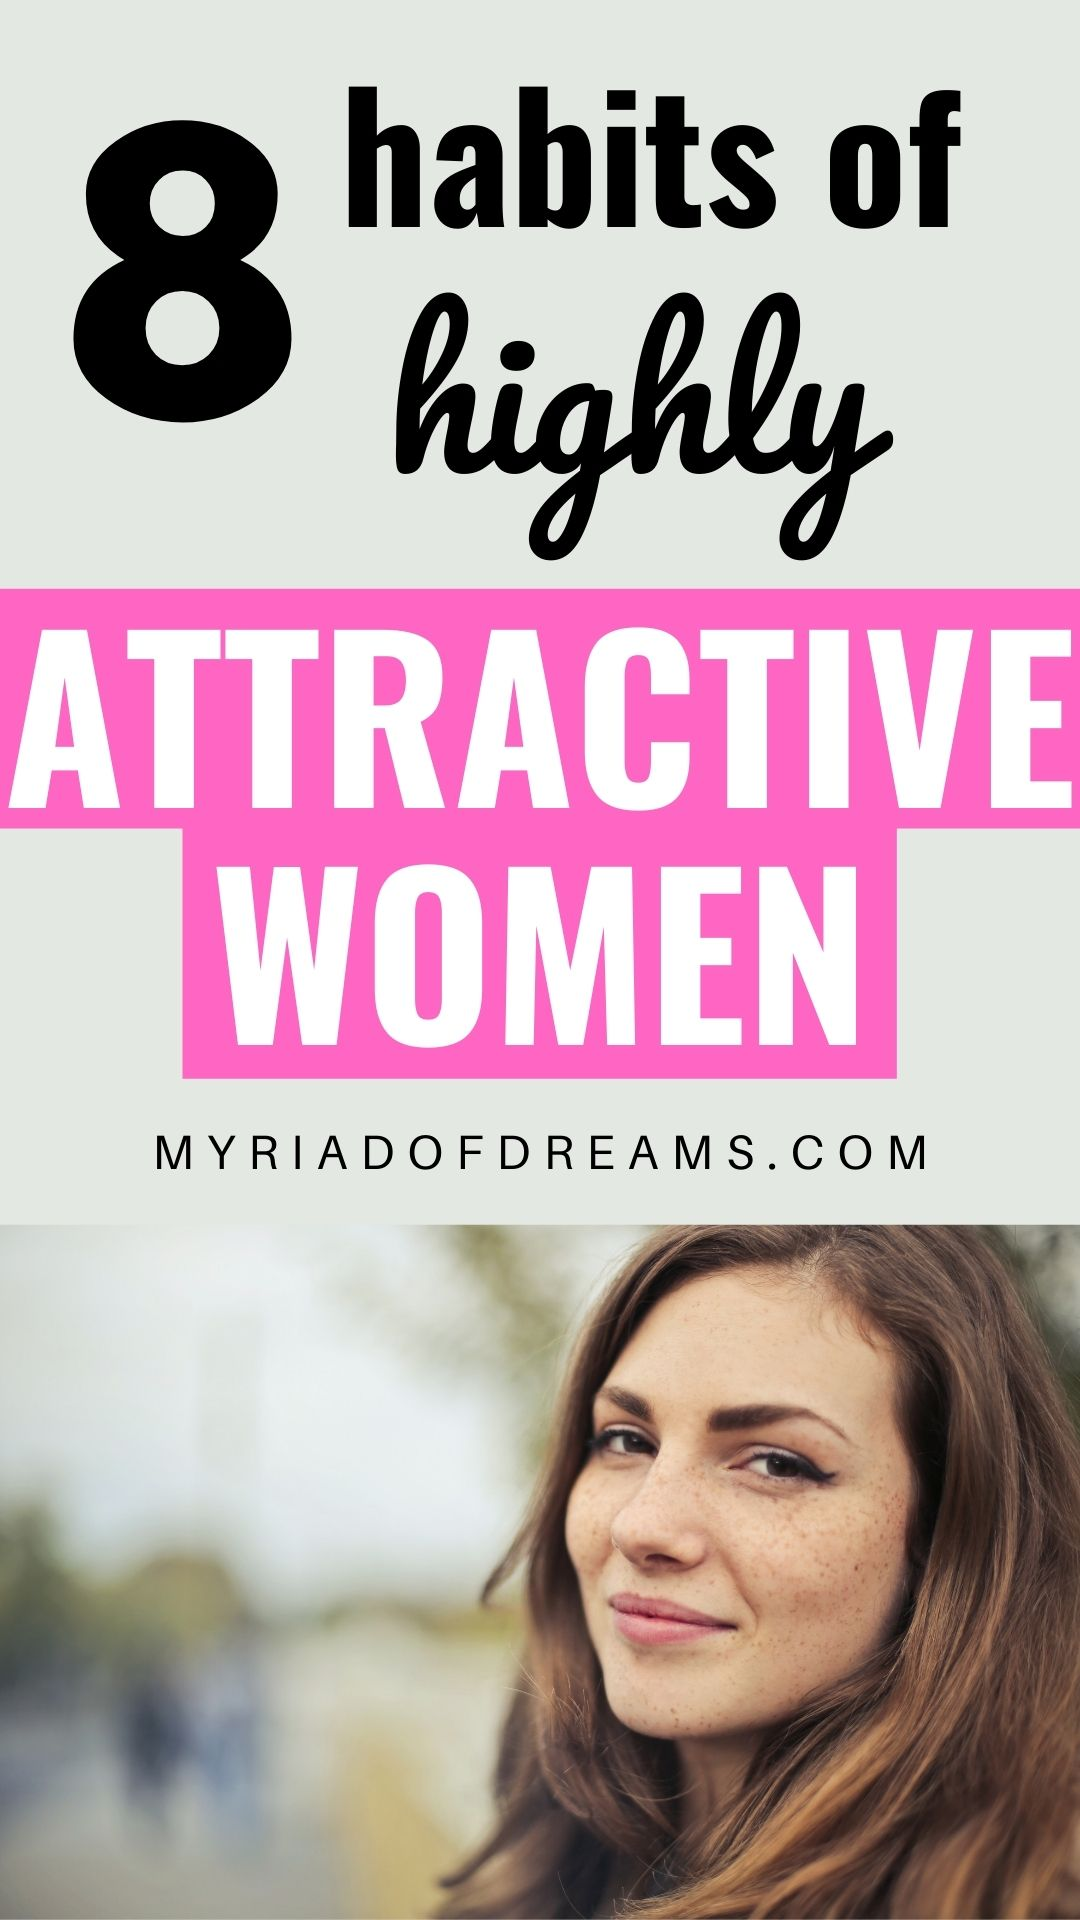 Want to know what attractive women have in common? Here are eight habits of attractive women that makes them so special. With these tips learn how to become more attractive. Start your self improvement journey and start your life makeover. Learn self love and become confident. Self development, personal growth, personal development, beauty, life improvement. #selfimprovement #beauty #lifehack #attractiveness #mindset #selfgrowth #positivity